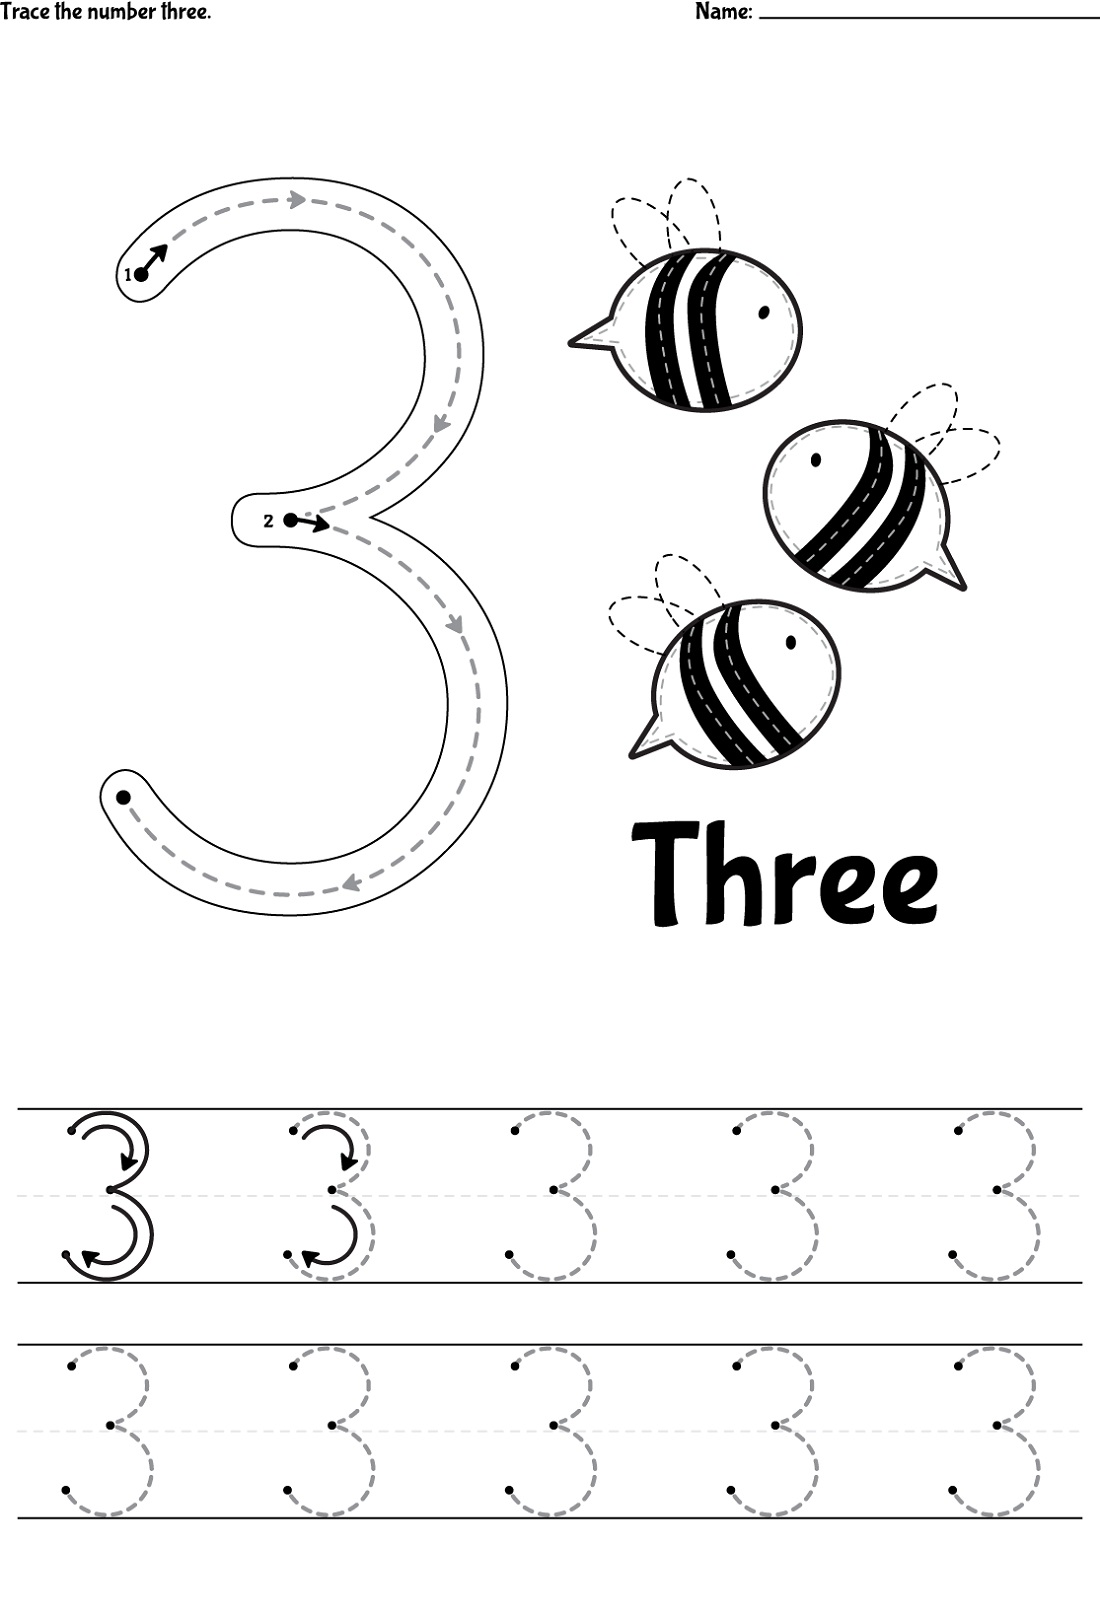 3-Year-Old-Education-Worksheets-Number.